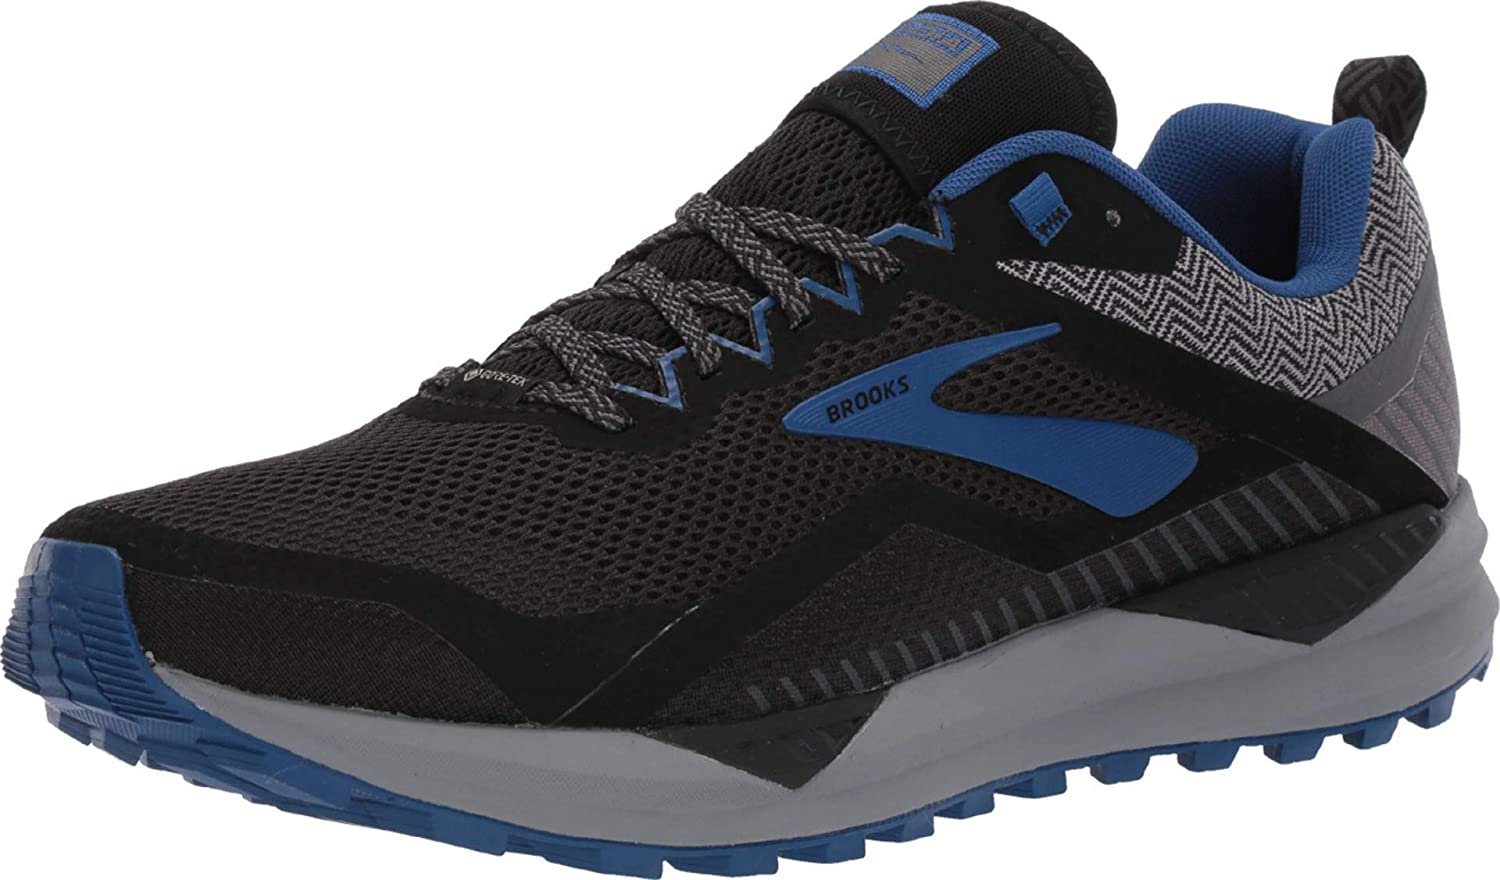 Brooks Mens Cascadia 14 GTX